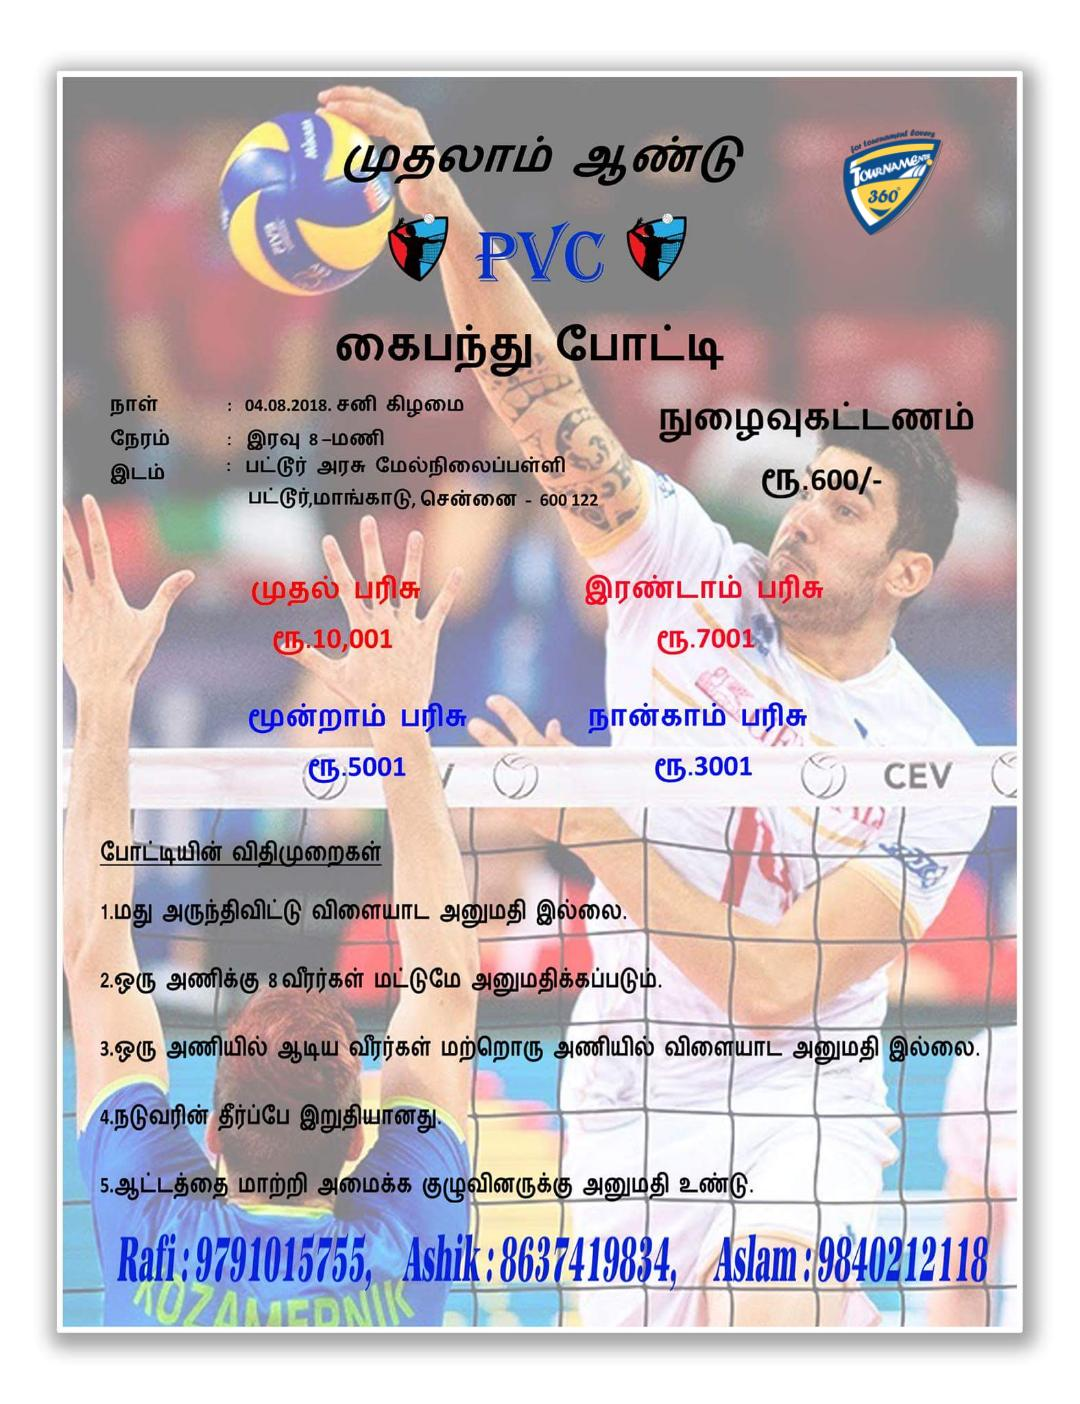 PVC 1st Year Volleyball Tournament